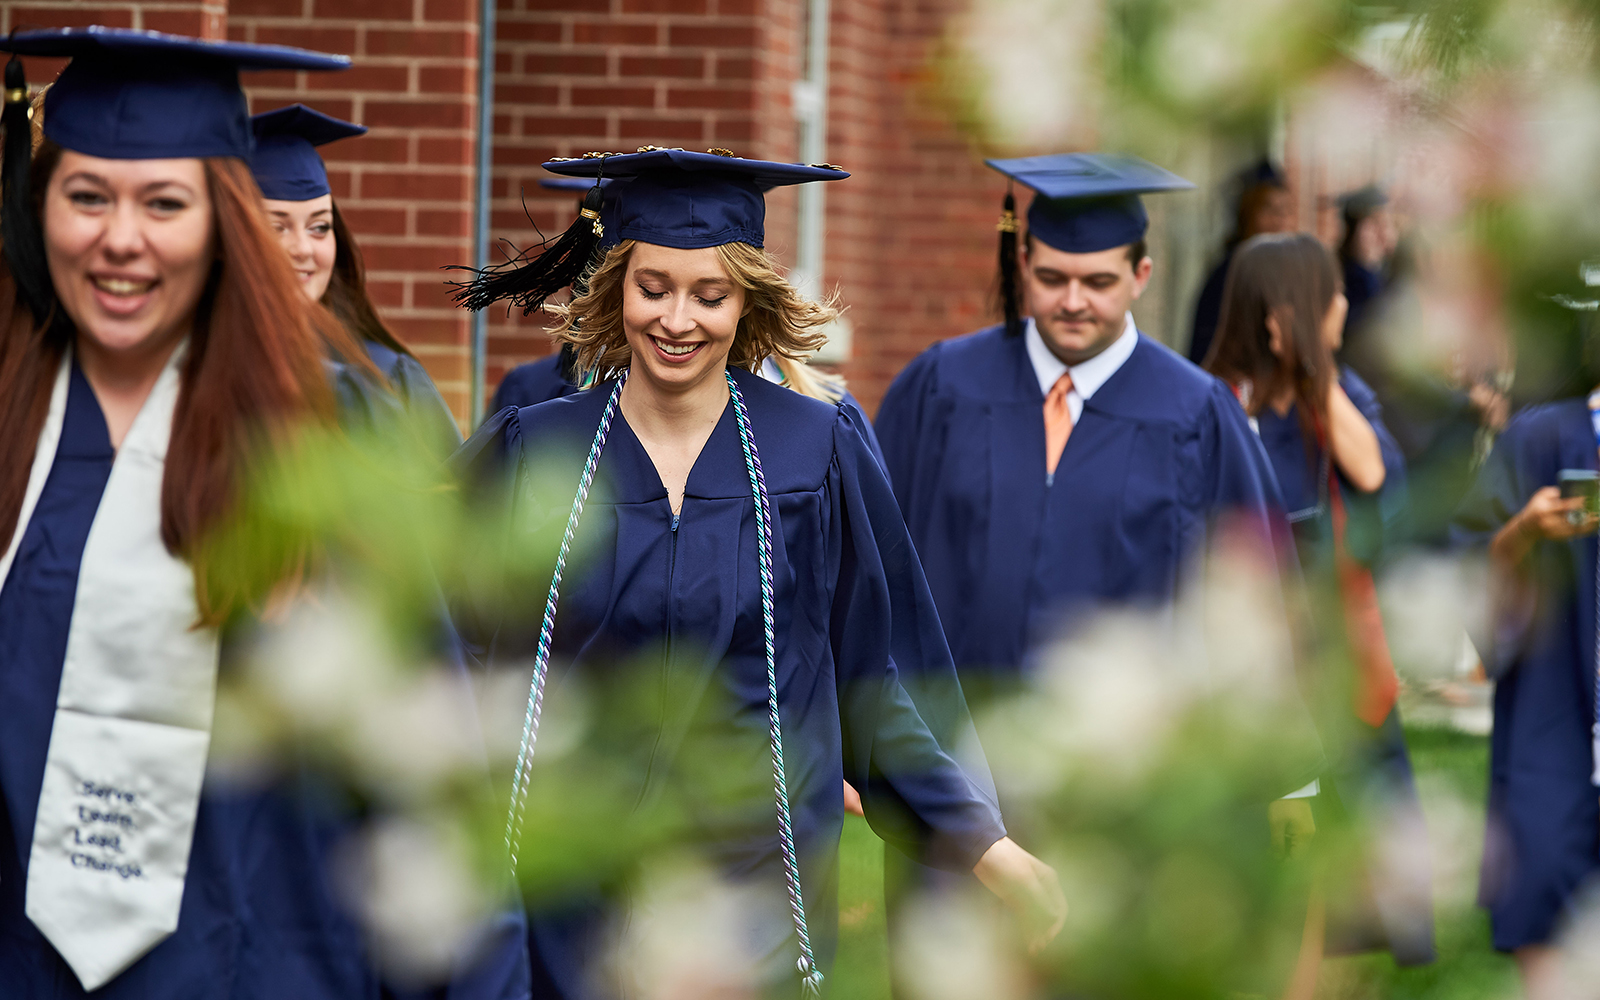 Students walk outside the Greer Field House before the College of Liberal Arts and Sciences Commencement ceremony on May 7, 2017. (Peter Morenus/UConn Photo)